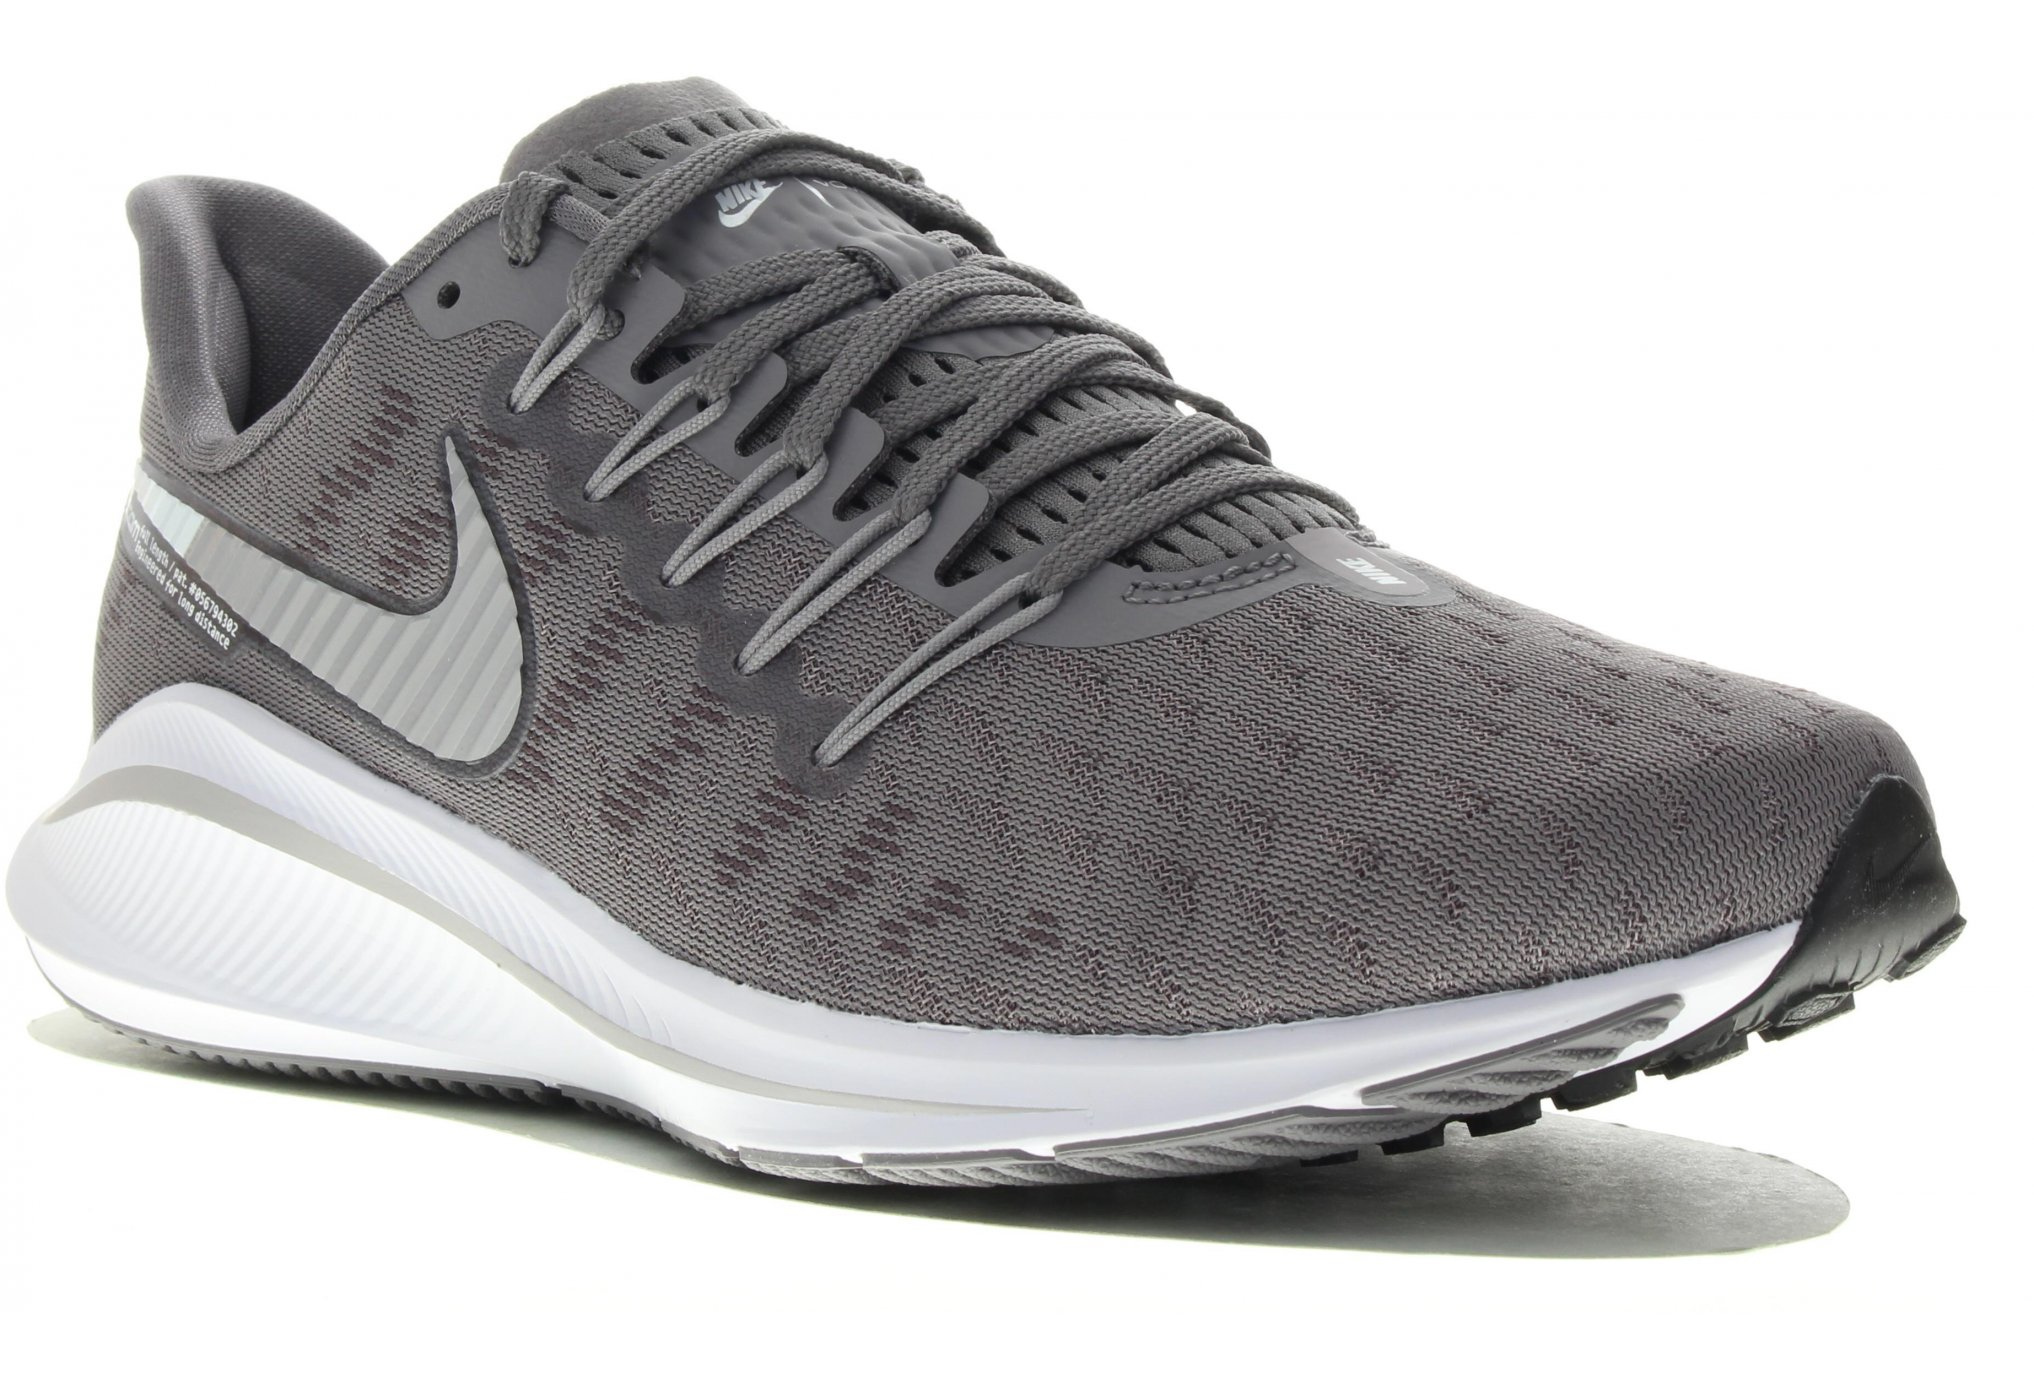 Nike Air Zoom Vomero 14 Chaussures running femme